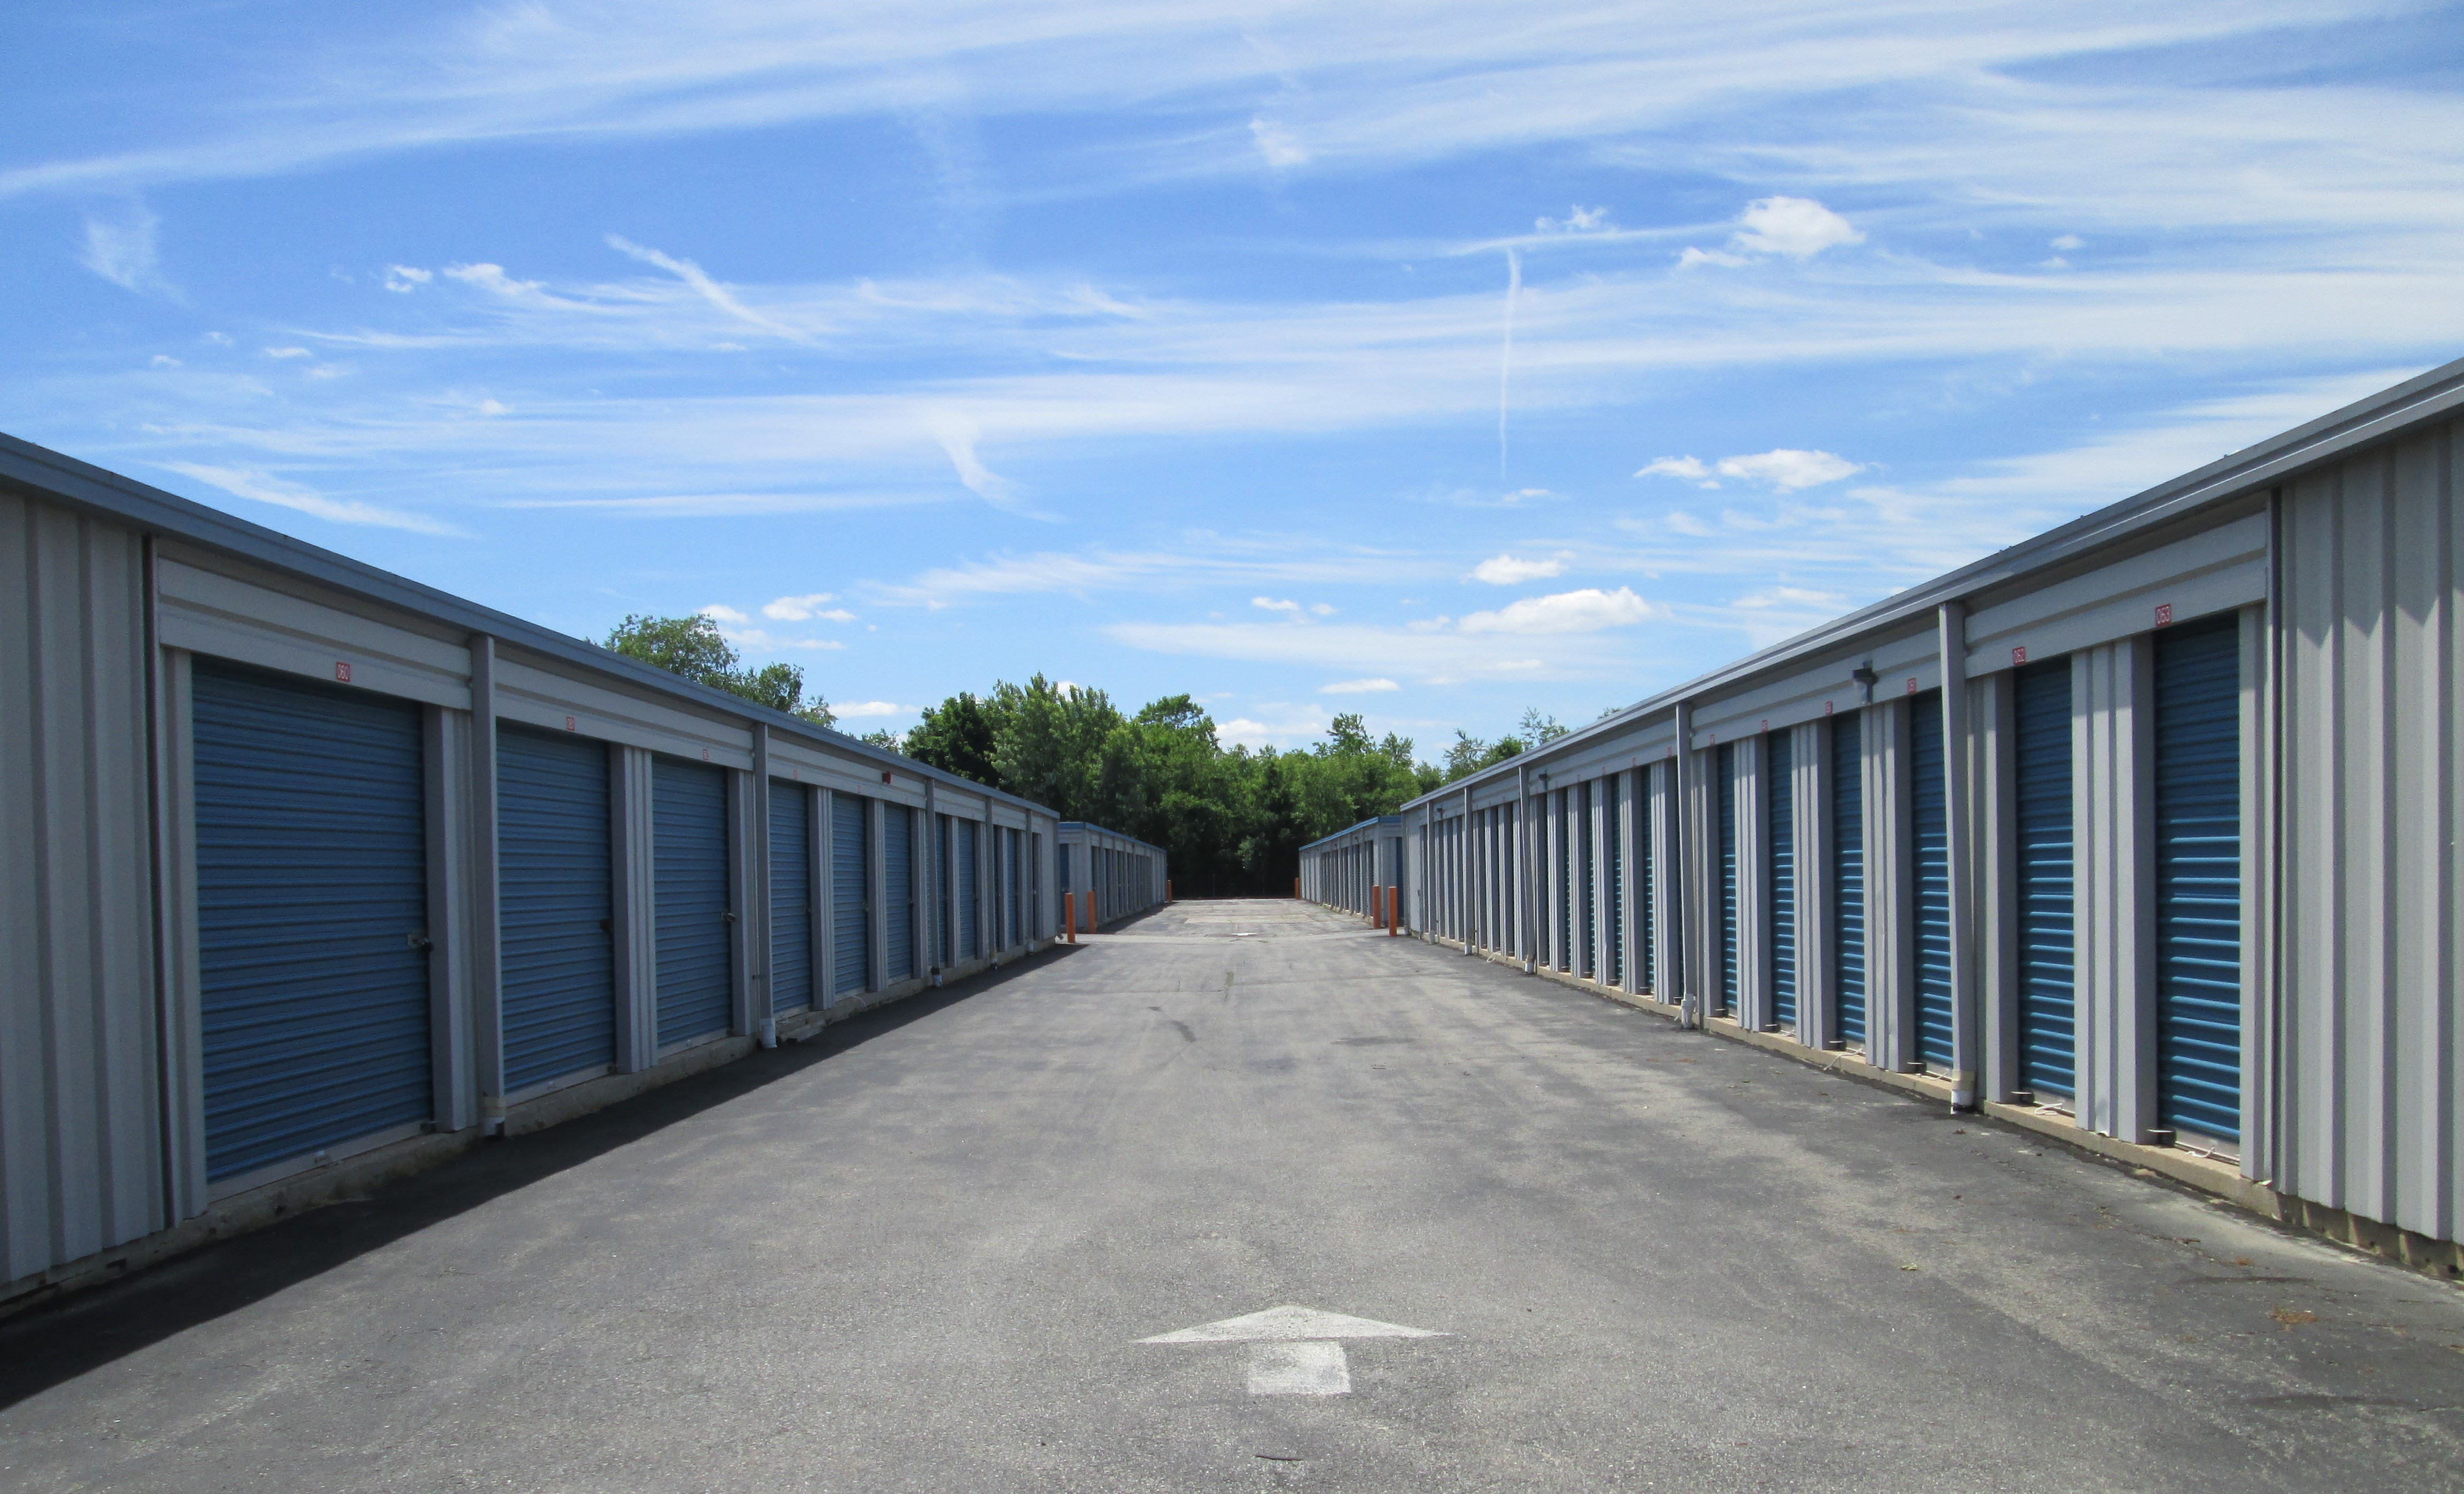 drive up access storage units in Swansea, MA